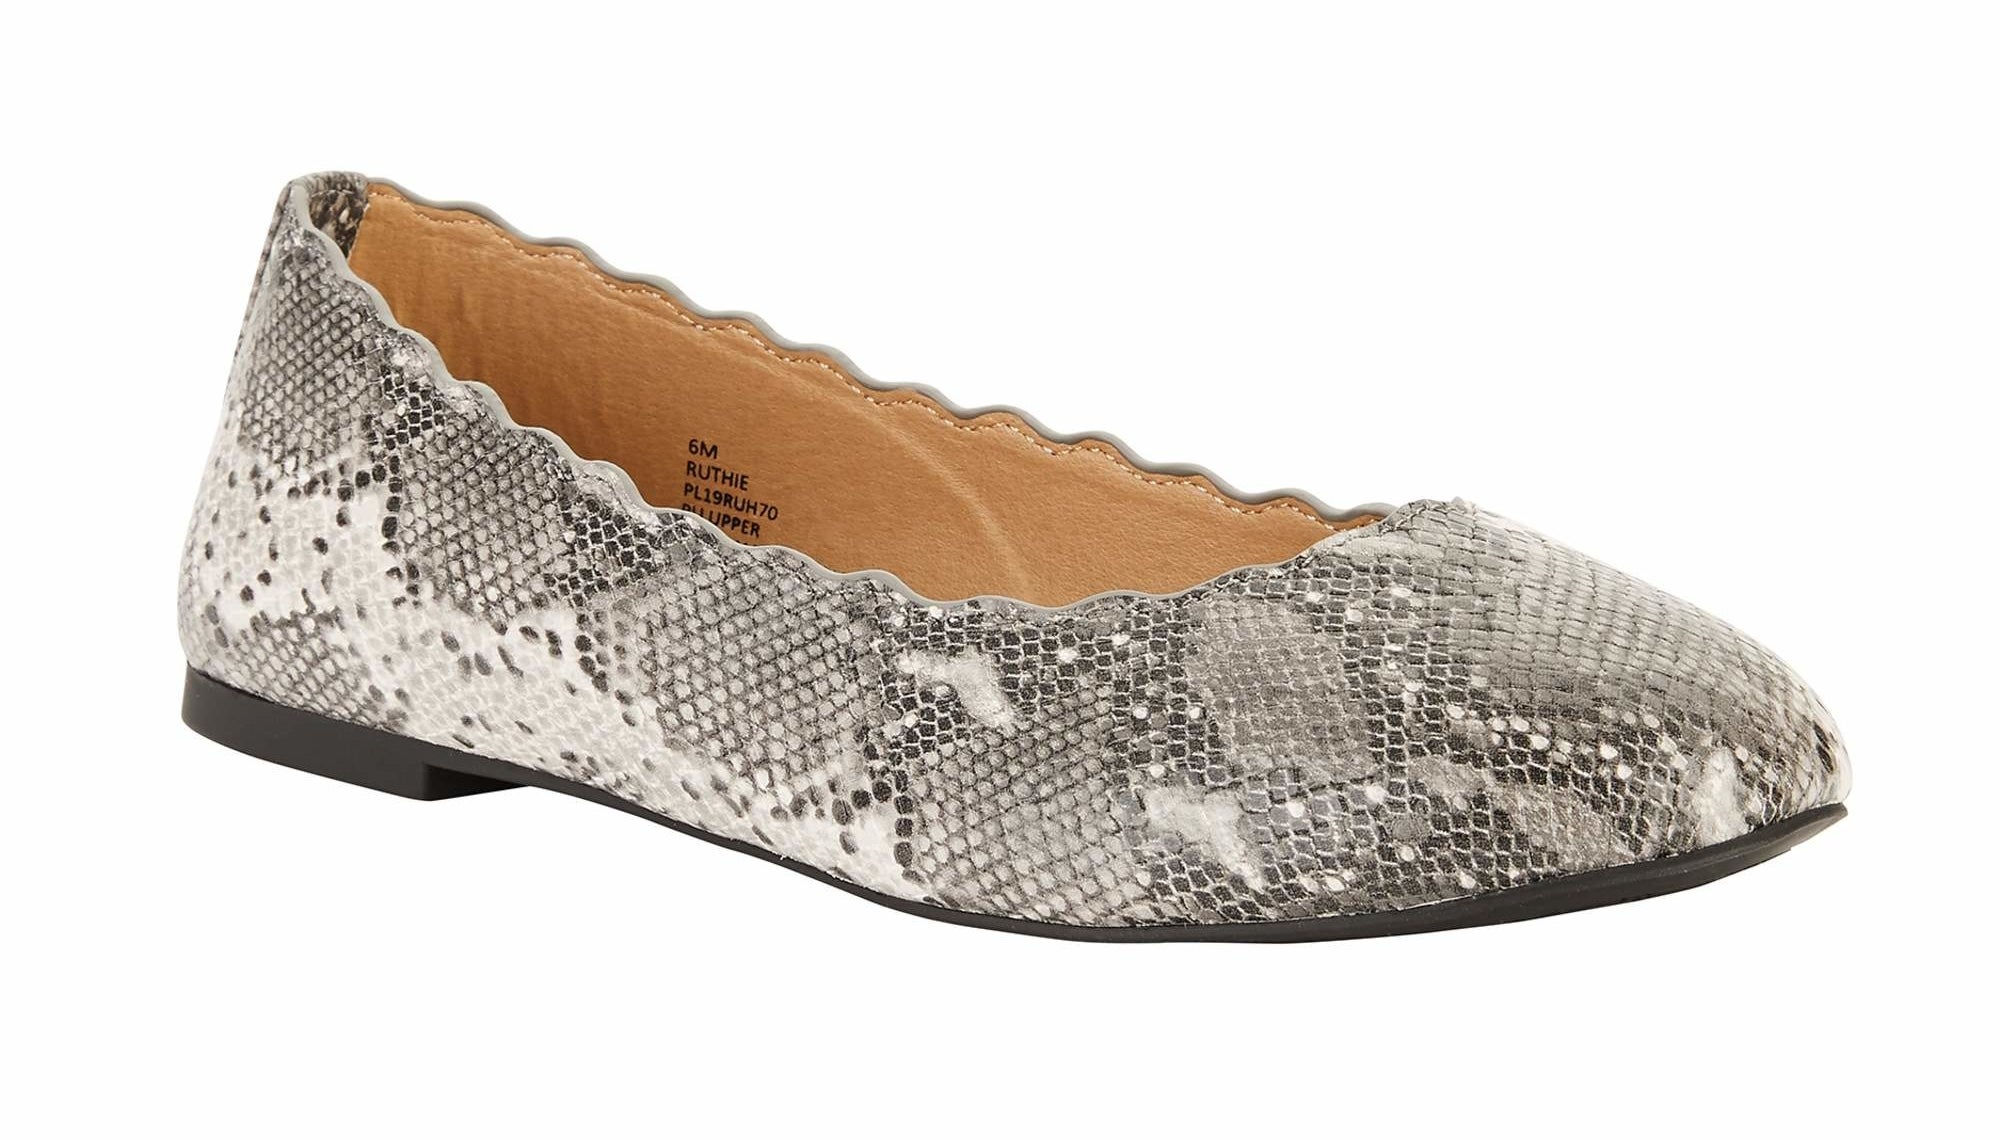 one scalloped edge flats in a faux snake skin print